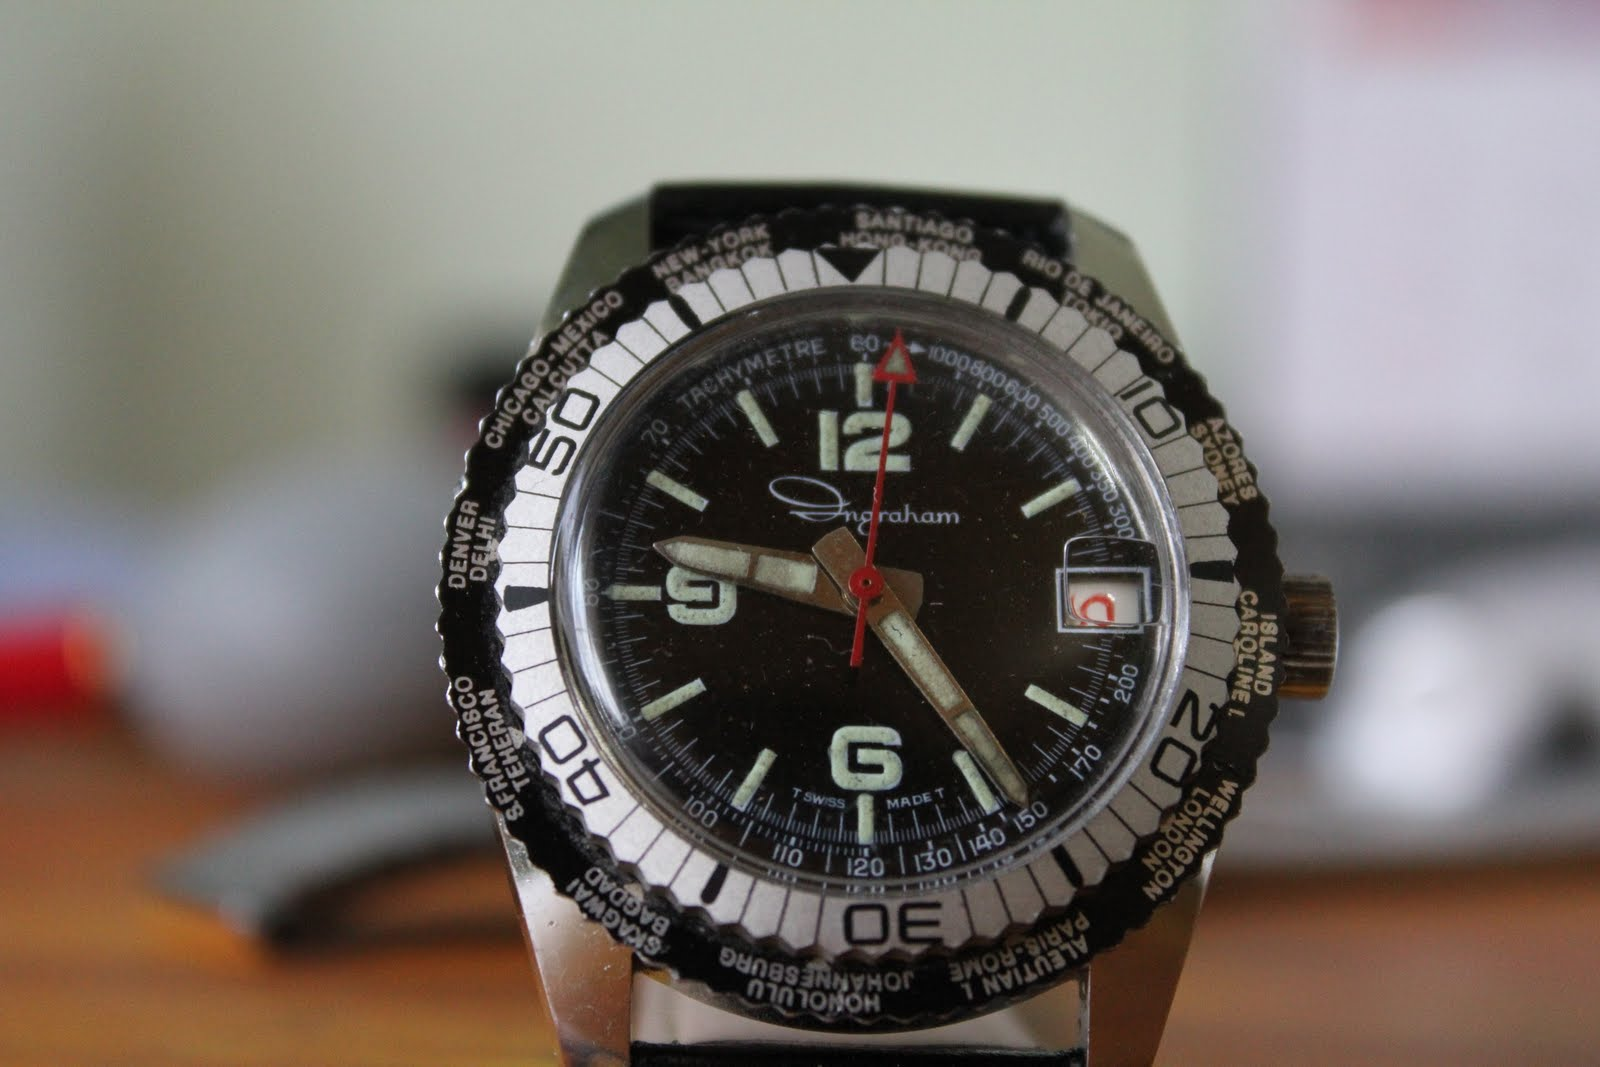 Vintage Watches for Sale !: FS: Ingraham World Time Diver